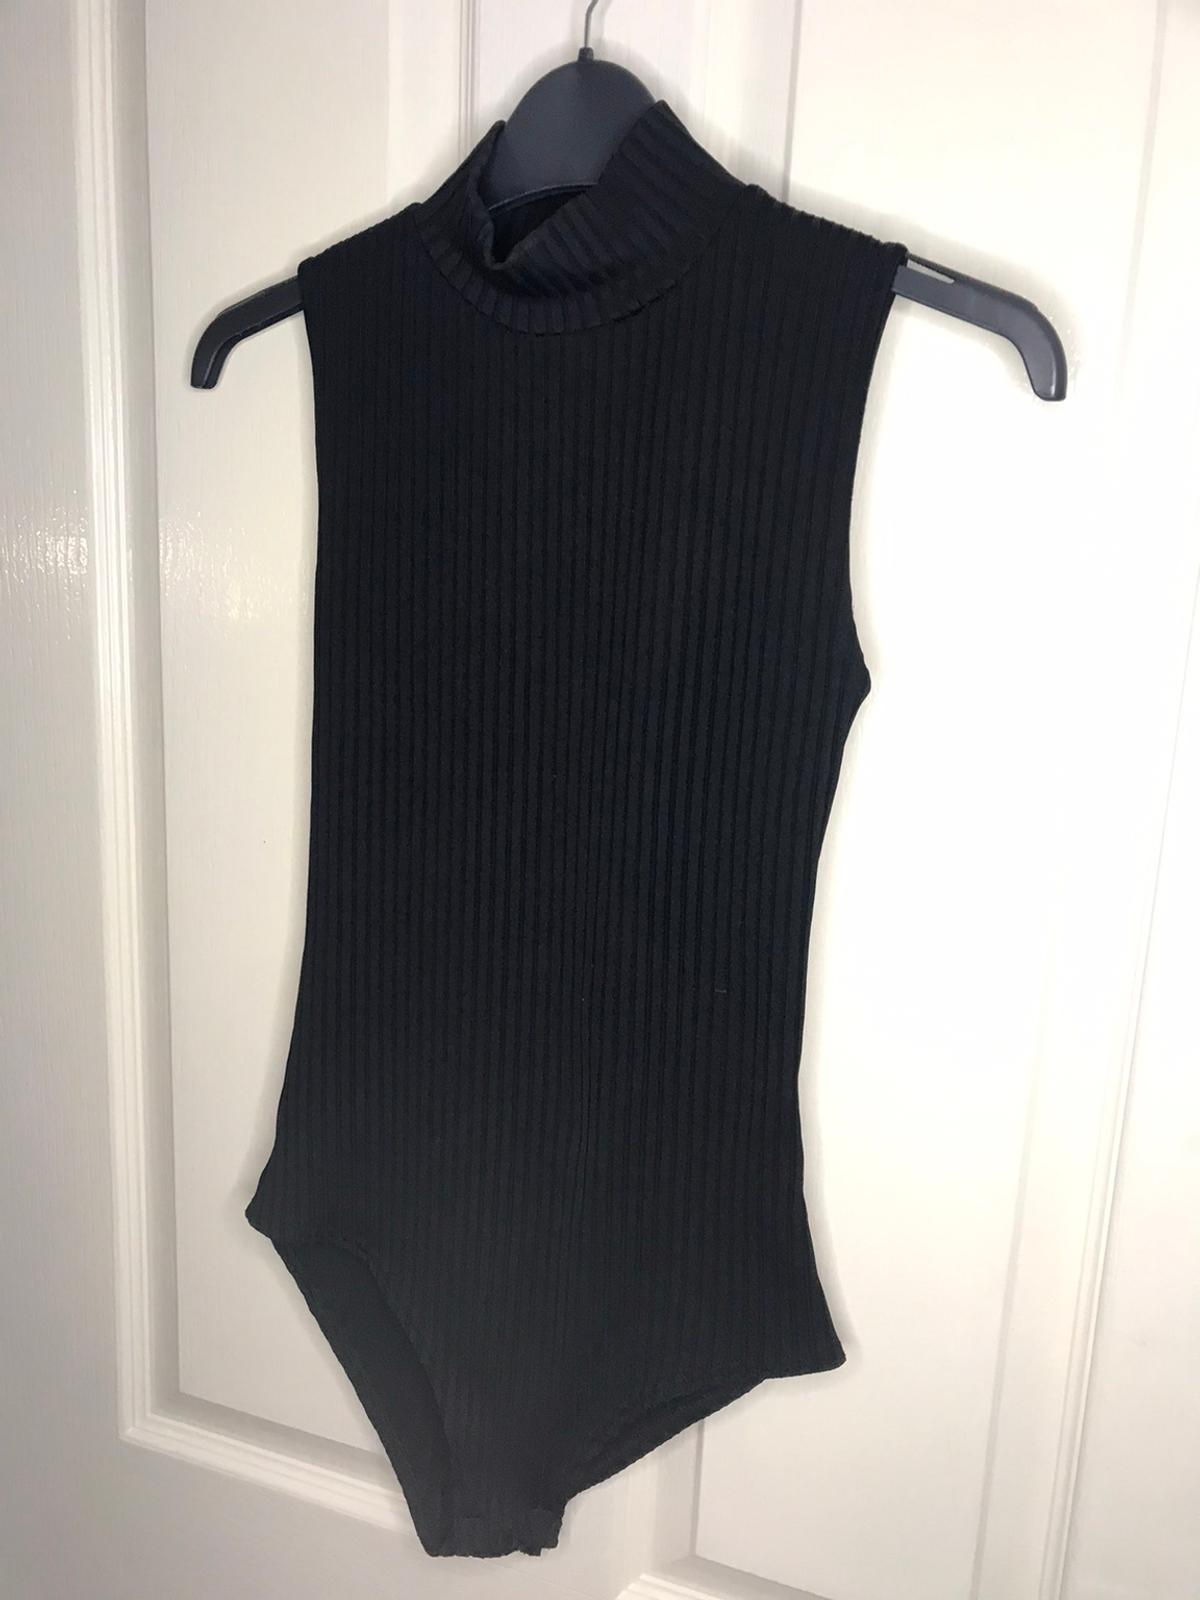 Size 8 black bodysuit with ribbed pattern